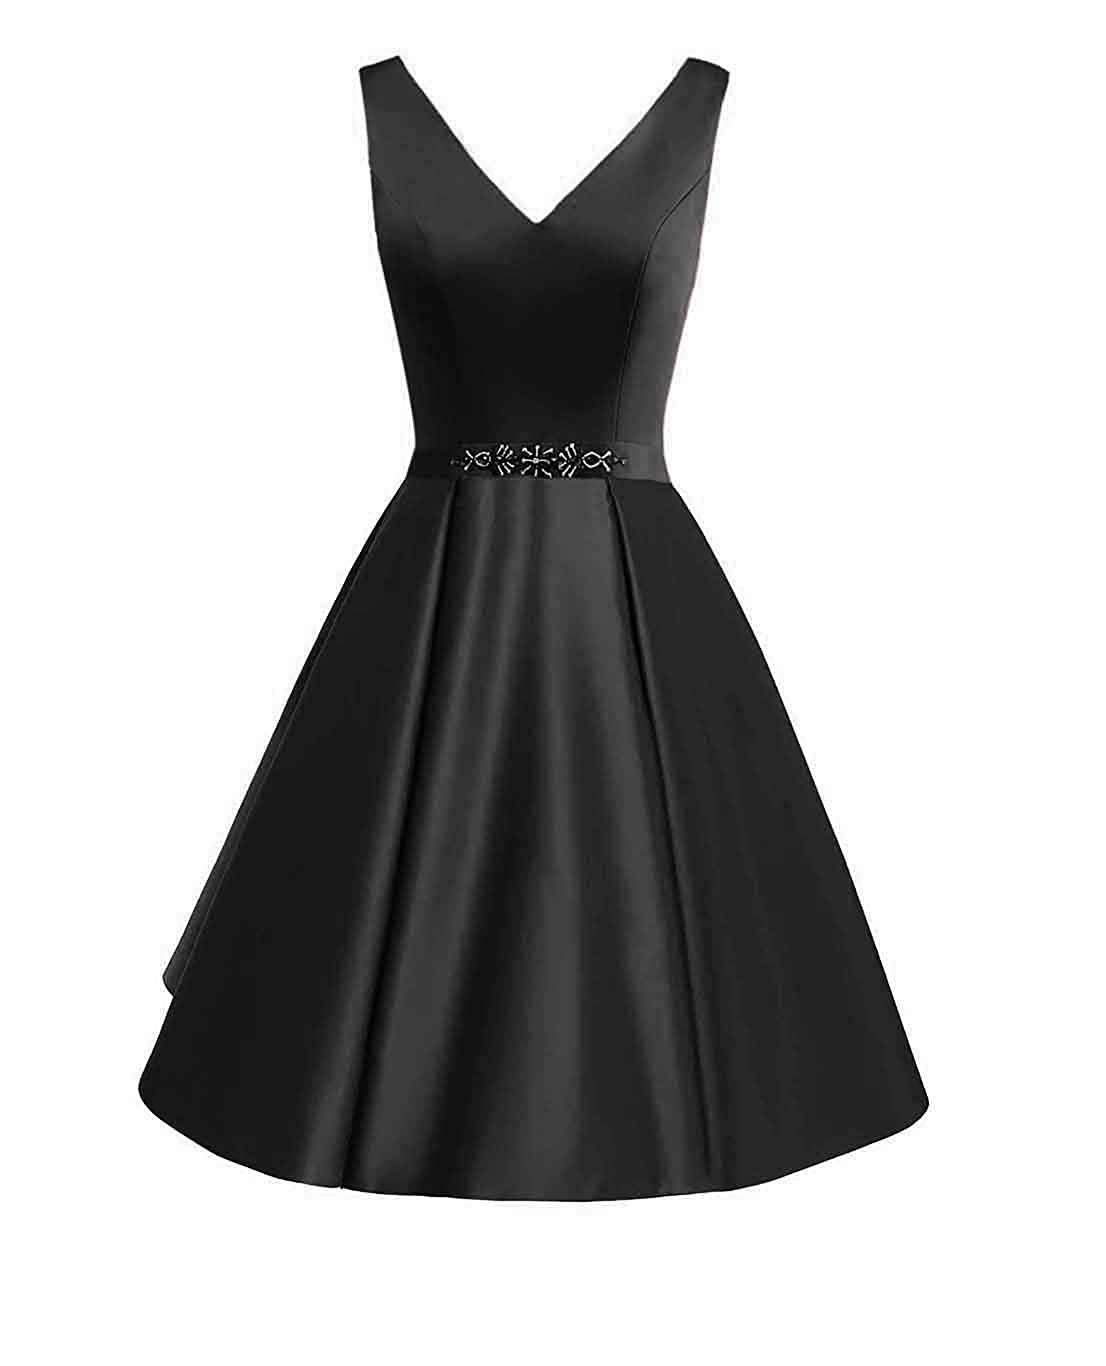 Black Miao Duo Women's Short v Neck Satin Prom Party Dresses Beaded Belt Formal Homecoming Ball Gown PM126